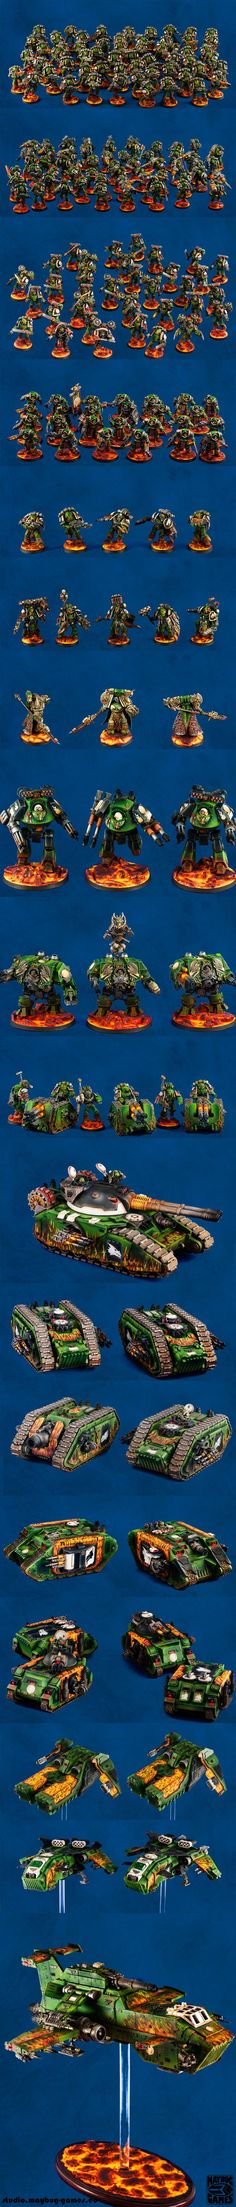 Warhammer 40k: Space Marines. INCREDIBLE, entire LEGION of Salamanders Space Marines. Pre-Heresy no less! The amount of time and energy that went into this is incredible - and terrifying